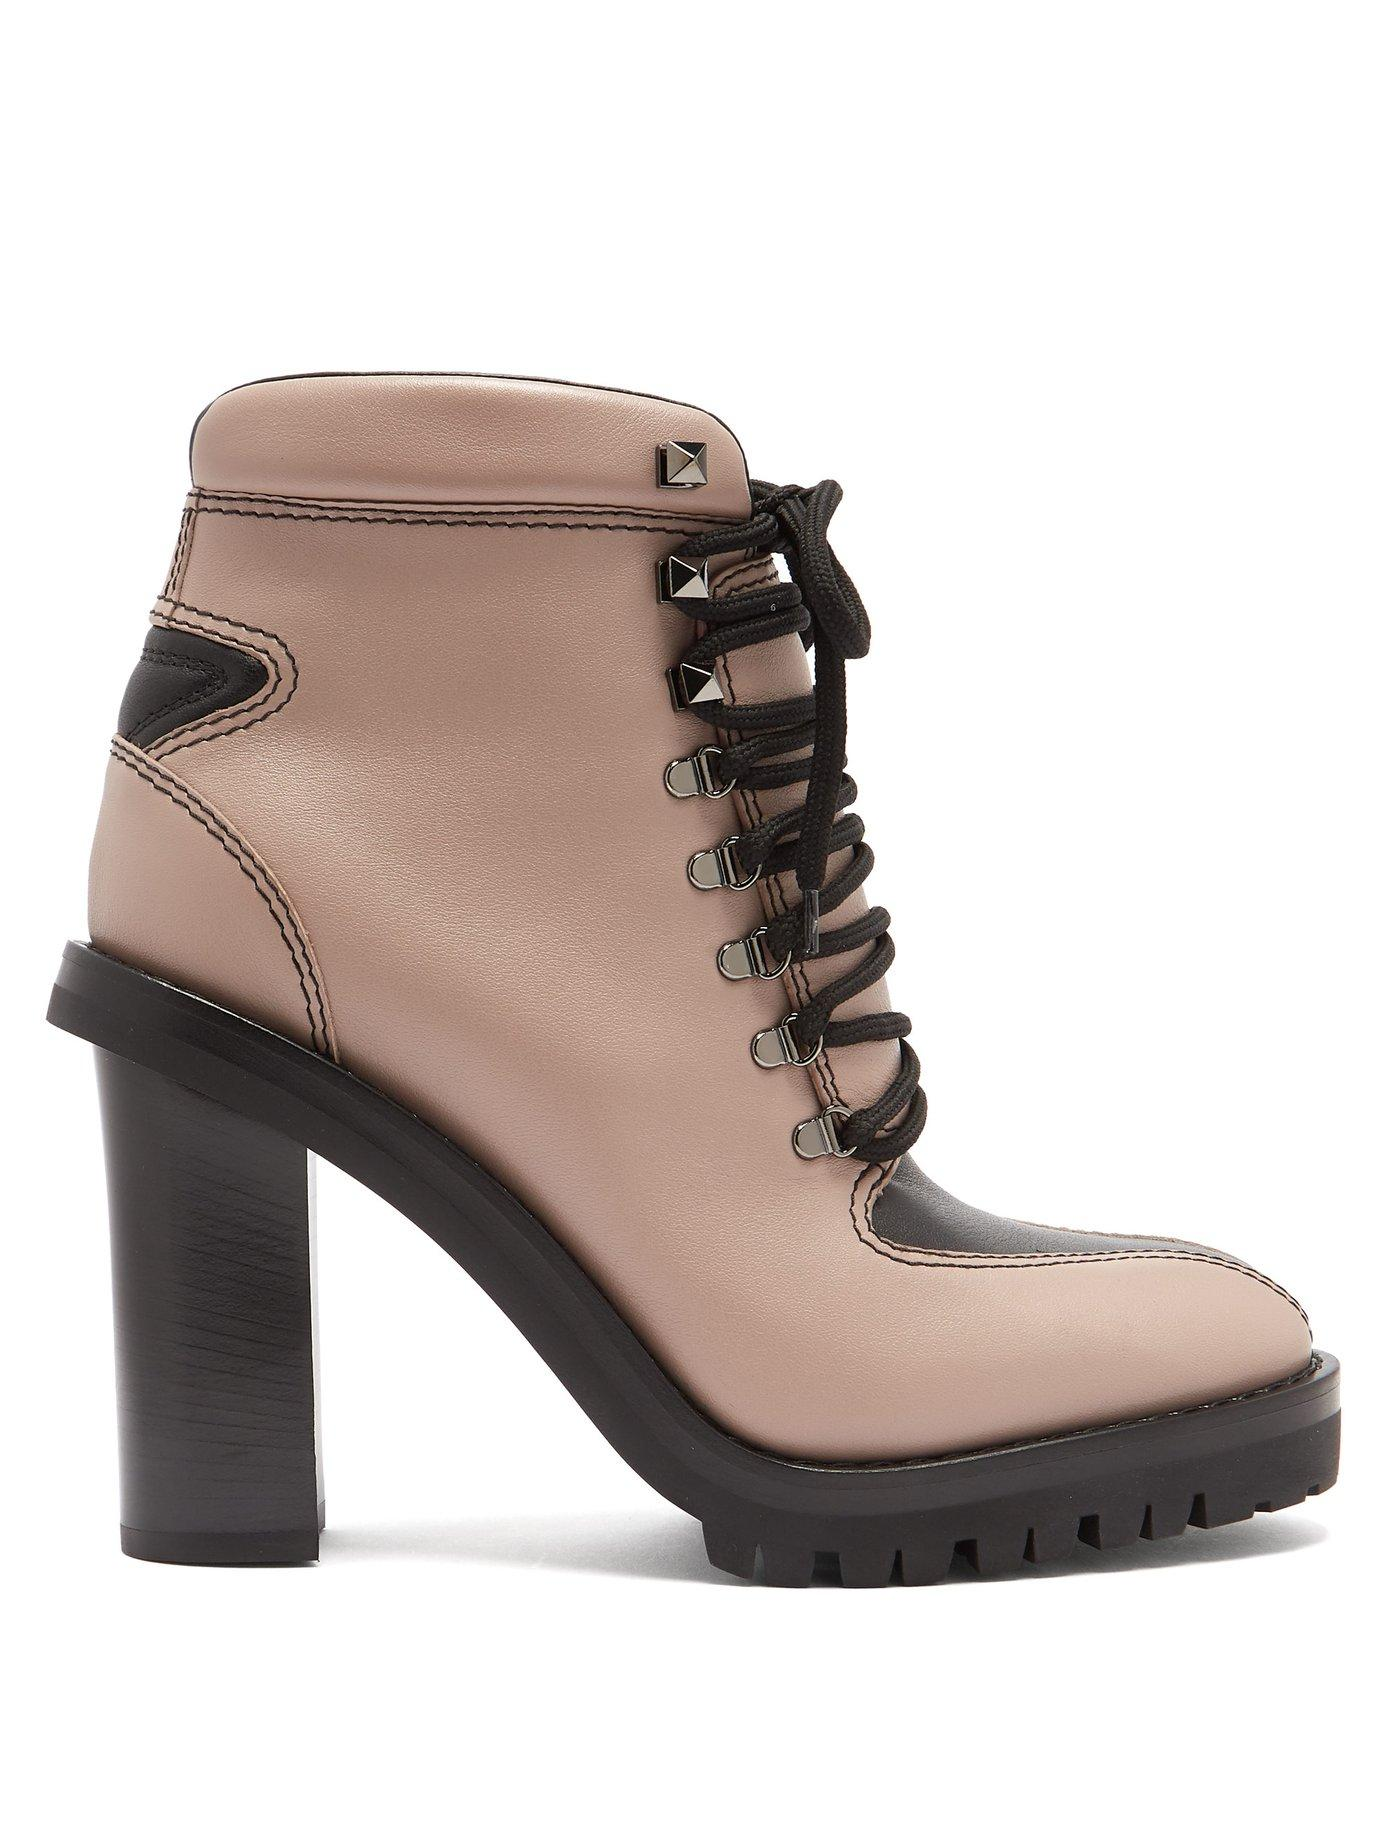 Valentino Trekking Lace-Up Leather Boots In Pink Beige